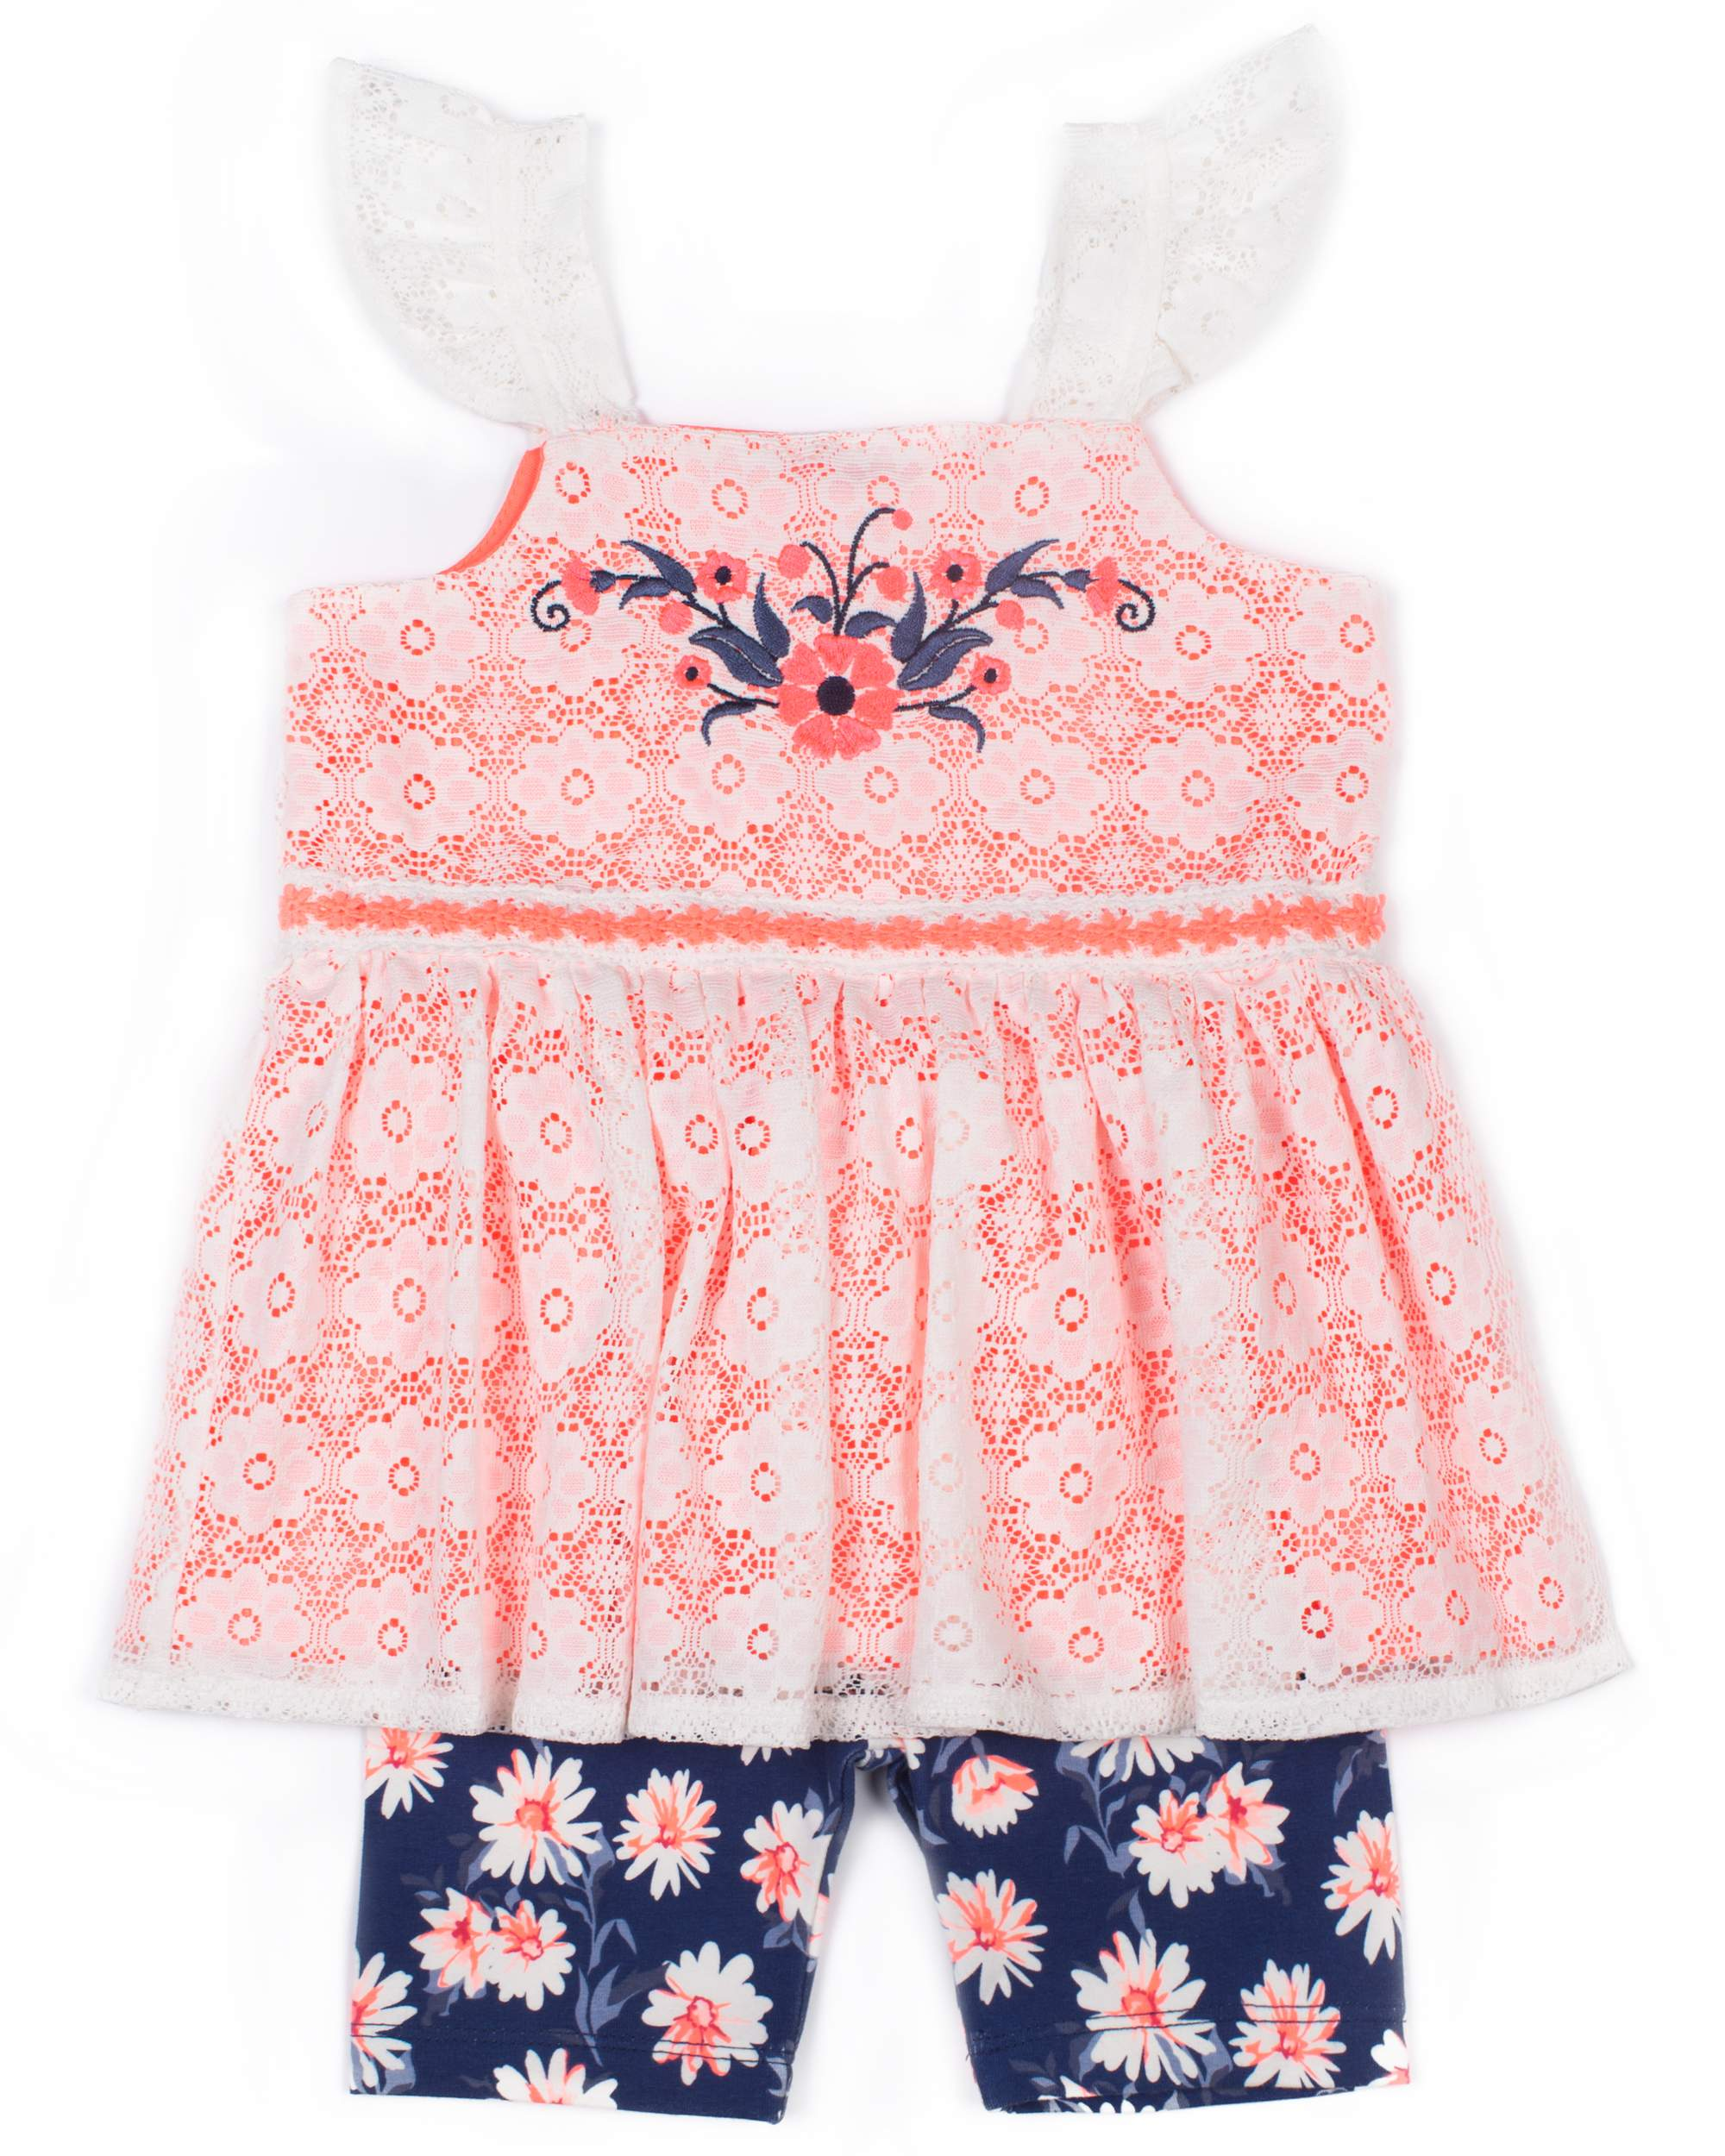 Sleeveless Babydoll Top & Bike Shorts, 2-Piece Outfit Set (Toddler Girls)